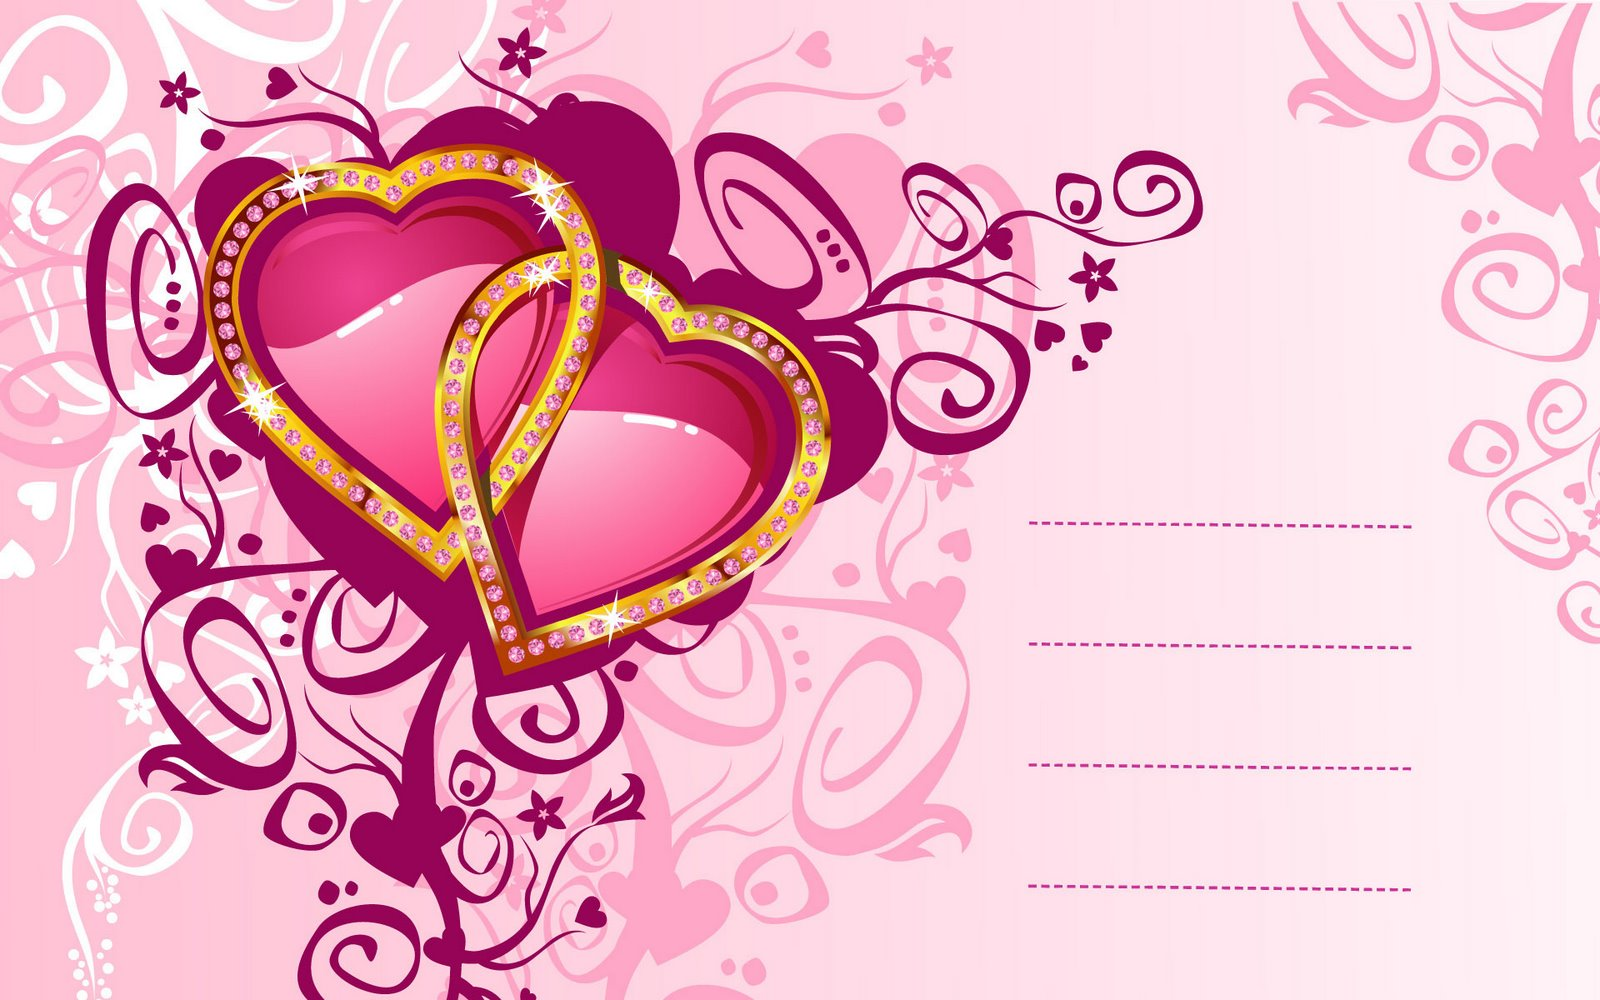 hearts animation free wallpaper | Love Wallpapers Romantic